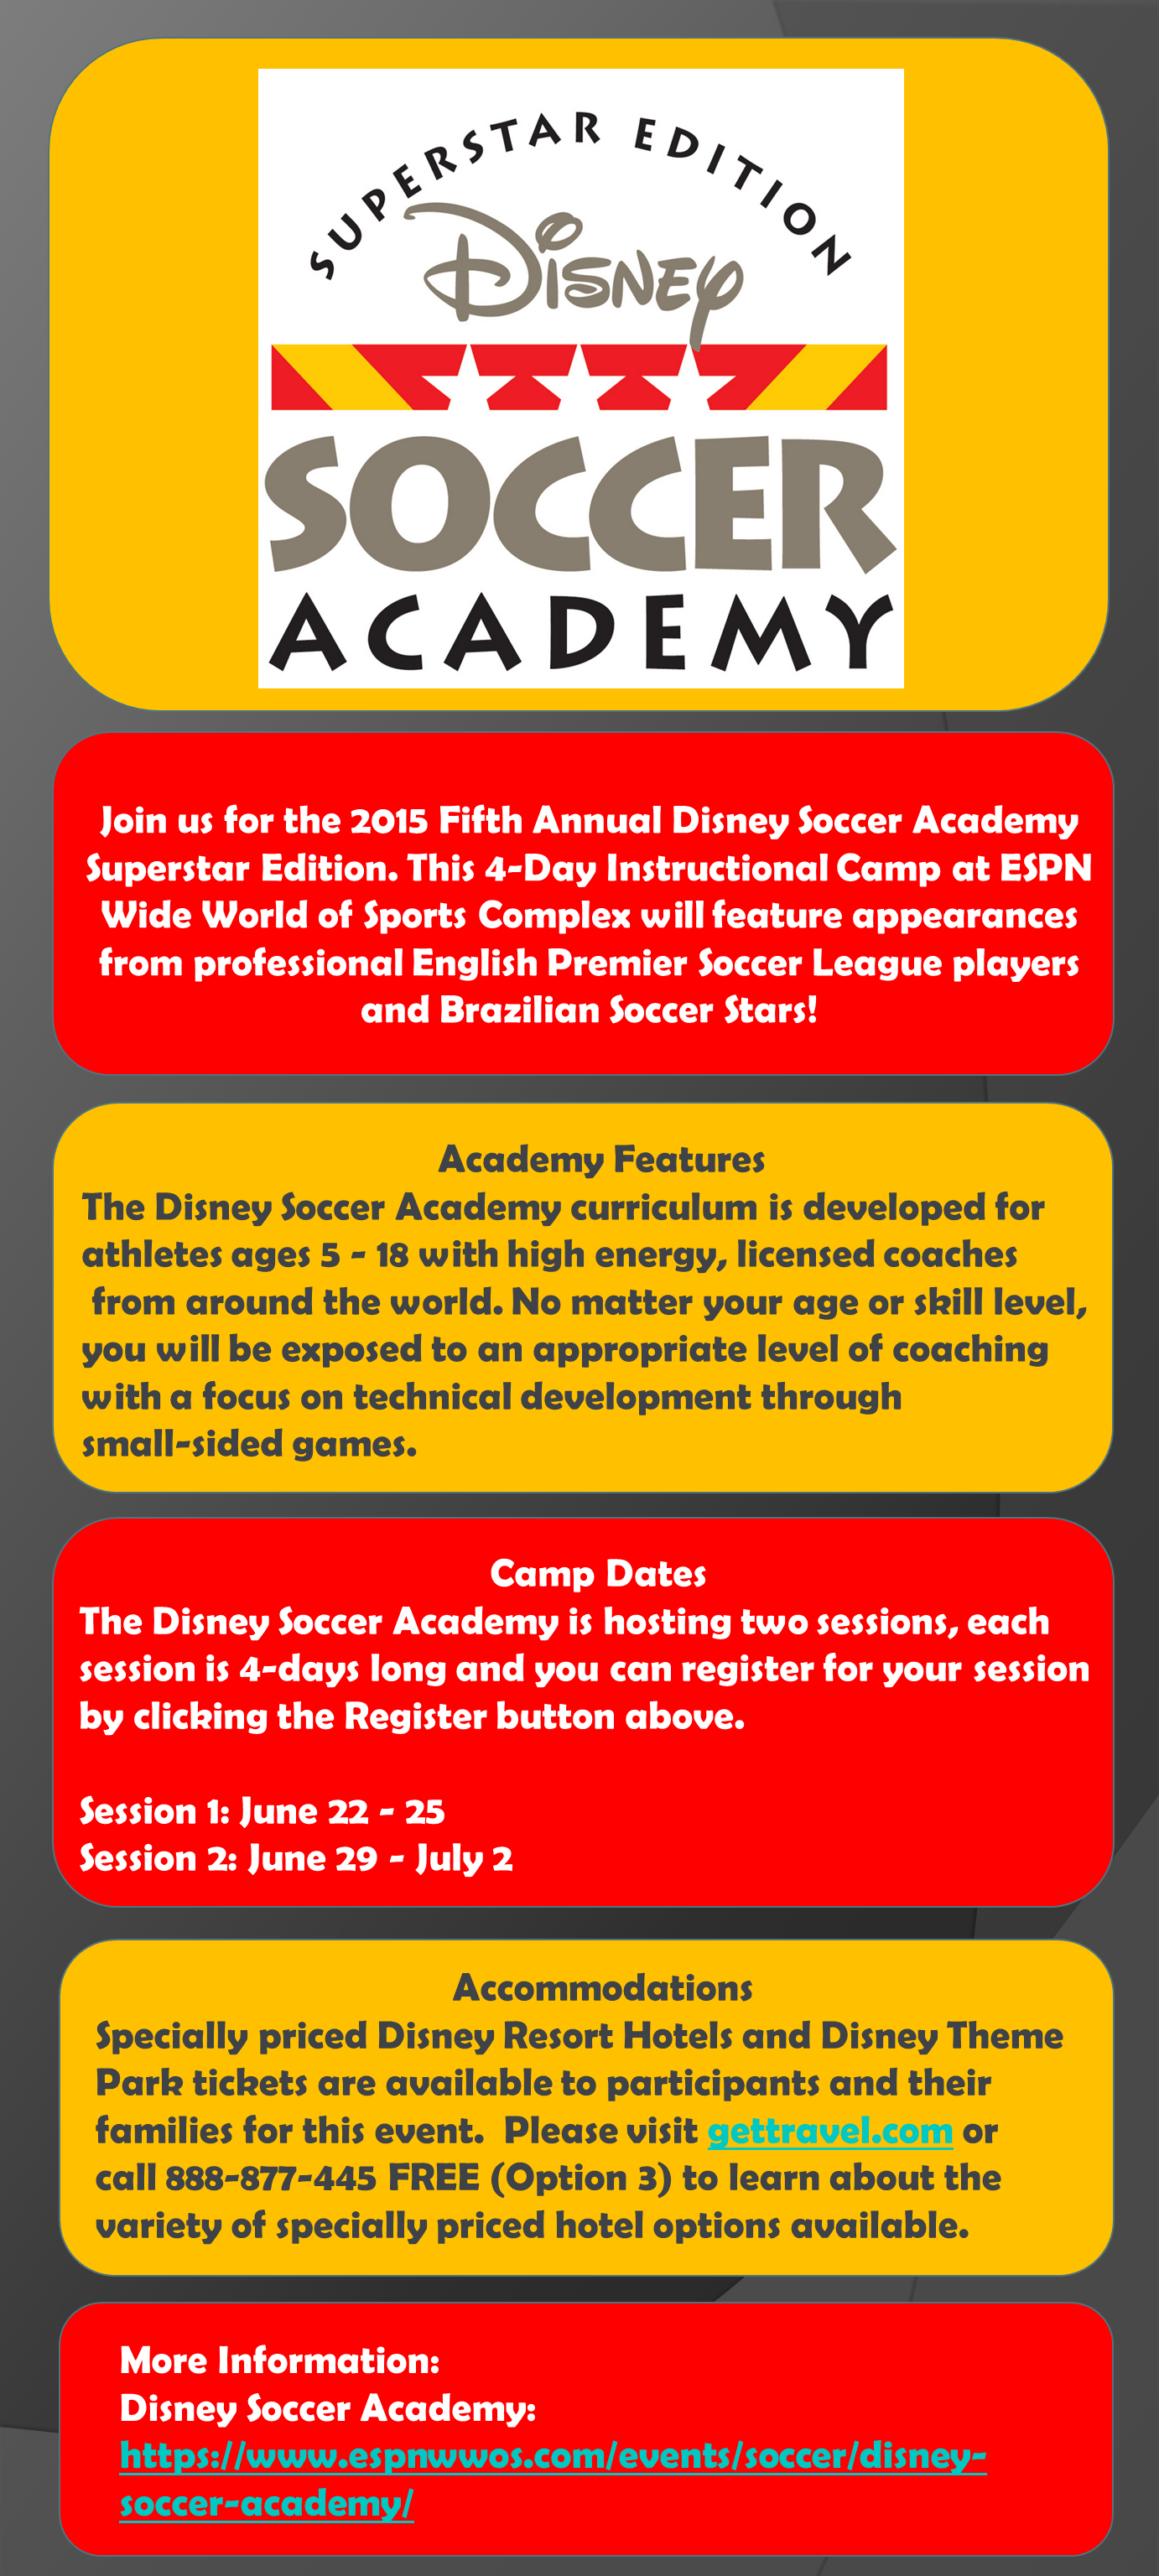 2015 Disney Soccer Academy at ESPN'S Wide World of Sports - Summer 2015